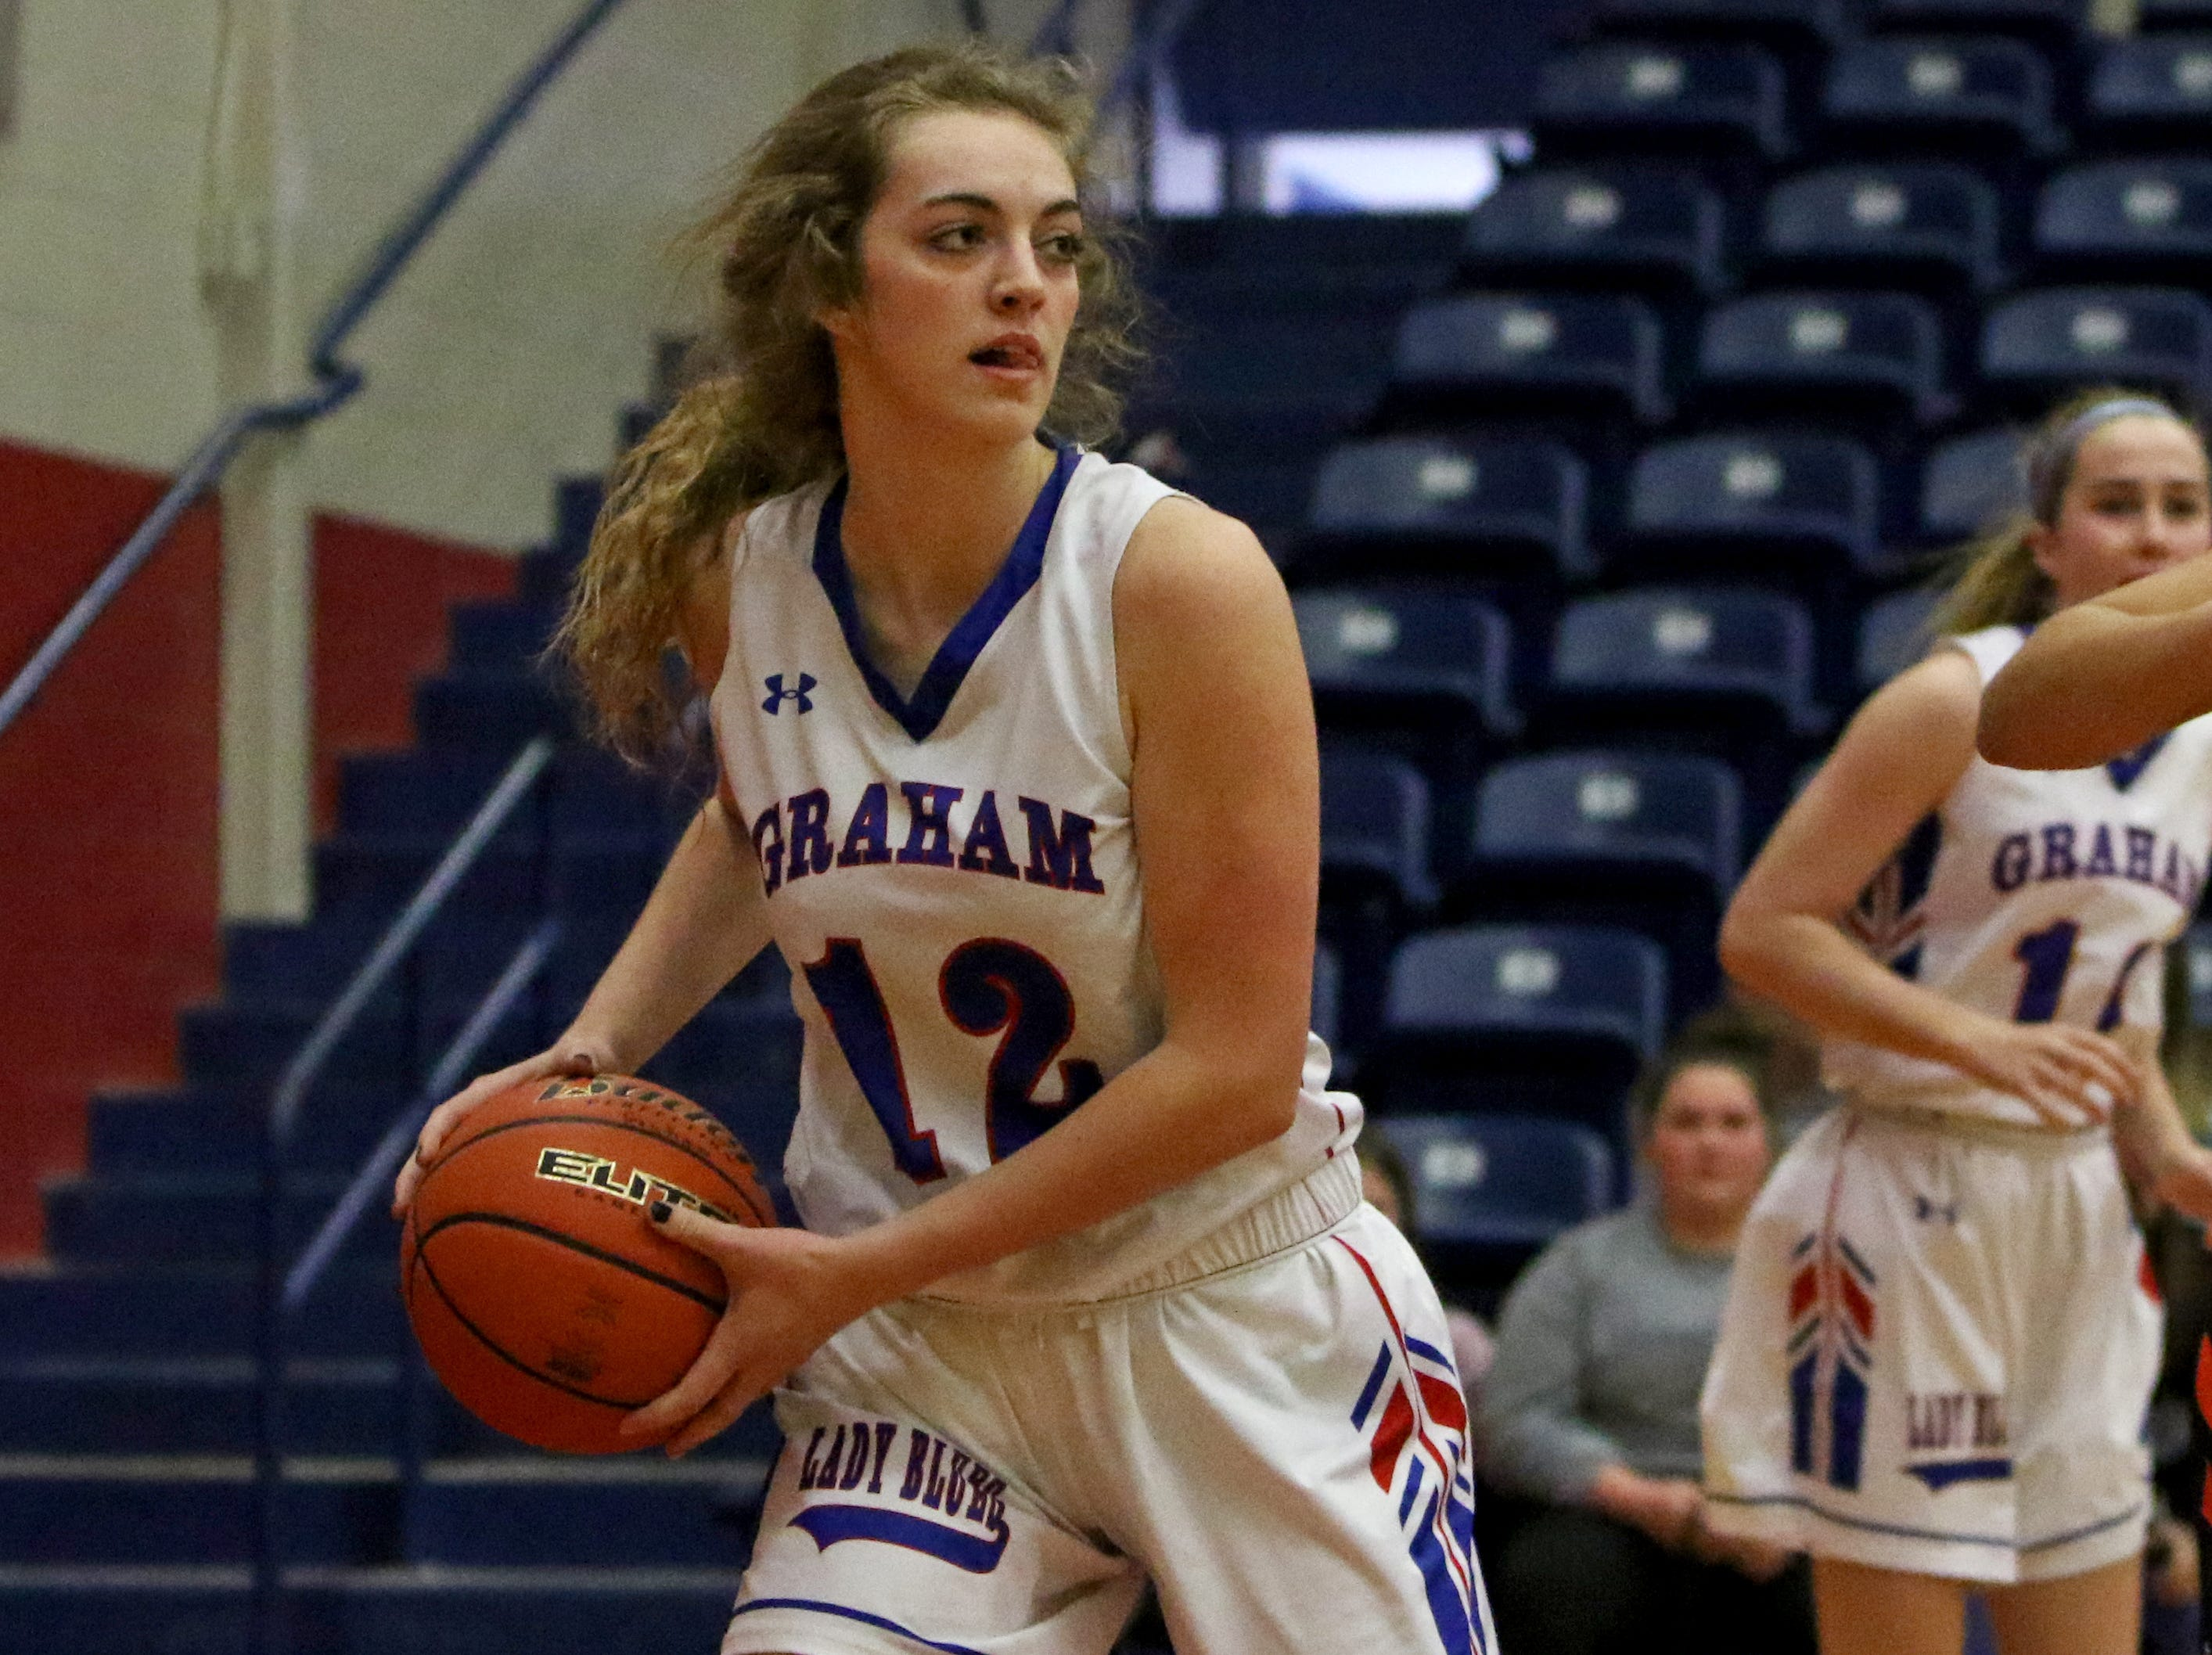 Graham's Emma Ranger looks for an open teammate in the game against Burkburnett Friday, Jan. 4, 2019, in Graham. The Lady Blues defeated the Lady Bulldogs 51-33.